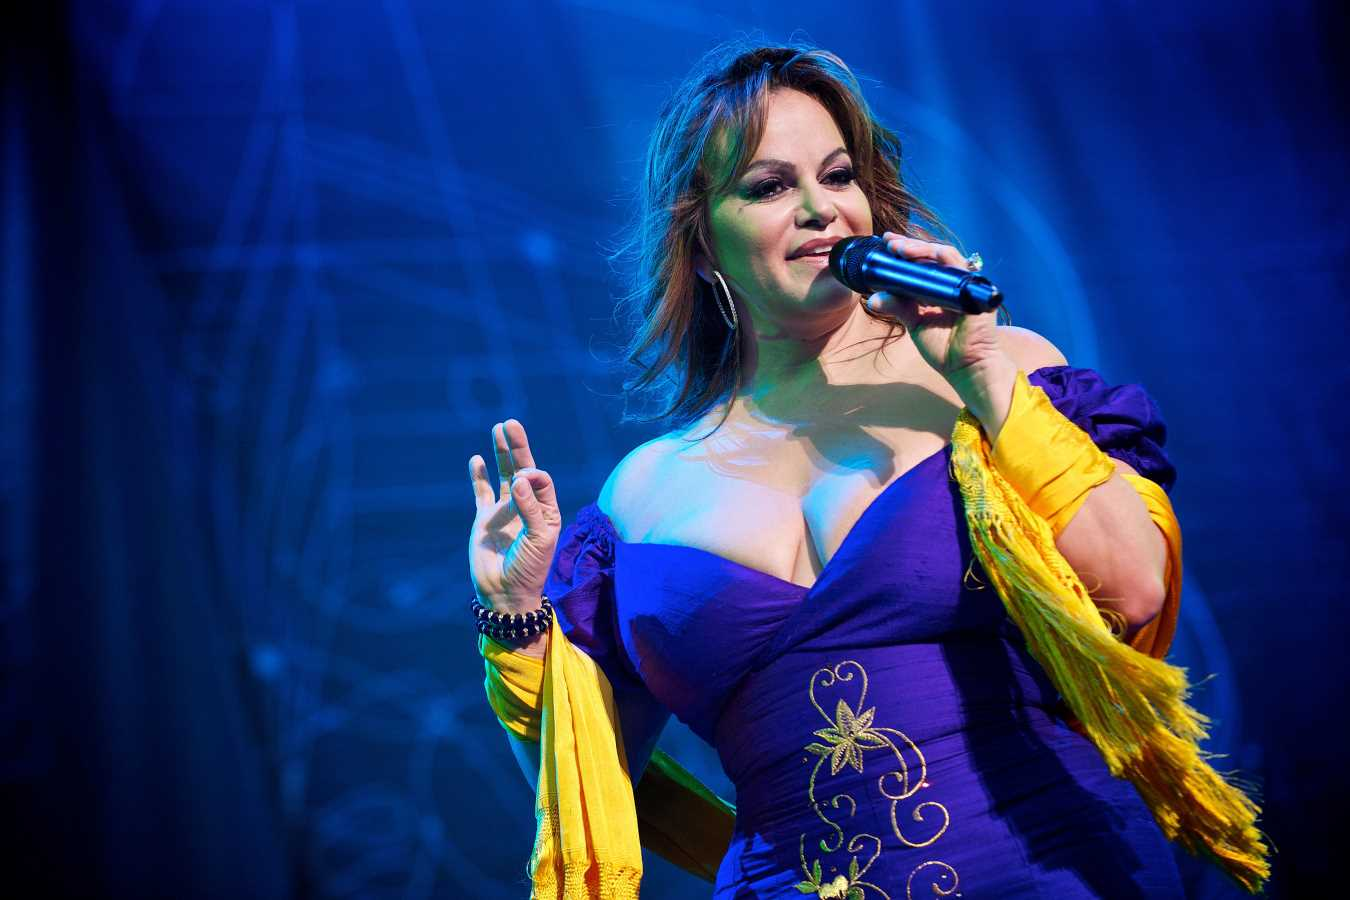 Jenni Rivera biopic will be written by Tina Turner biopic writer